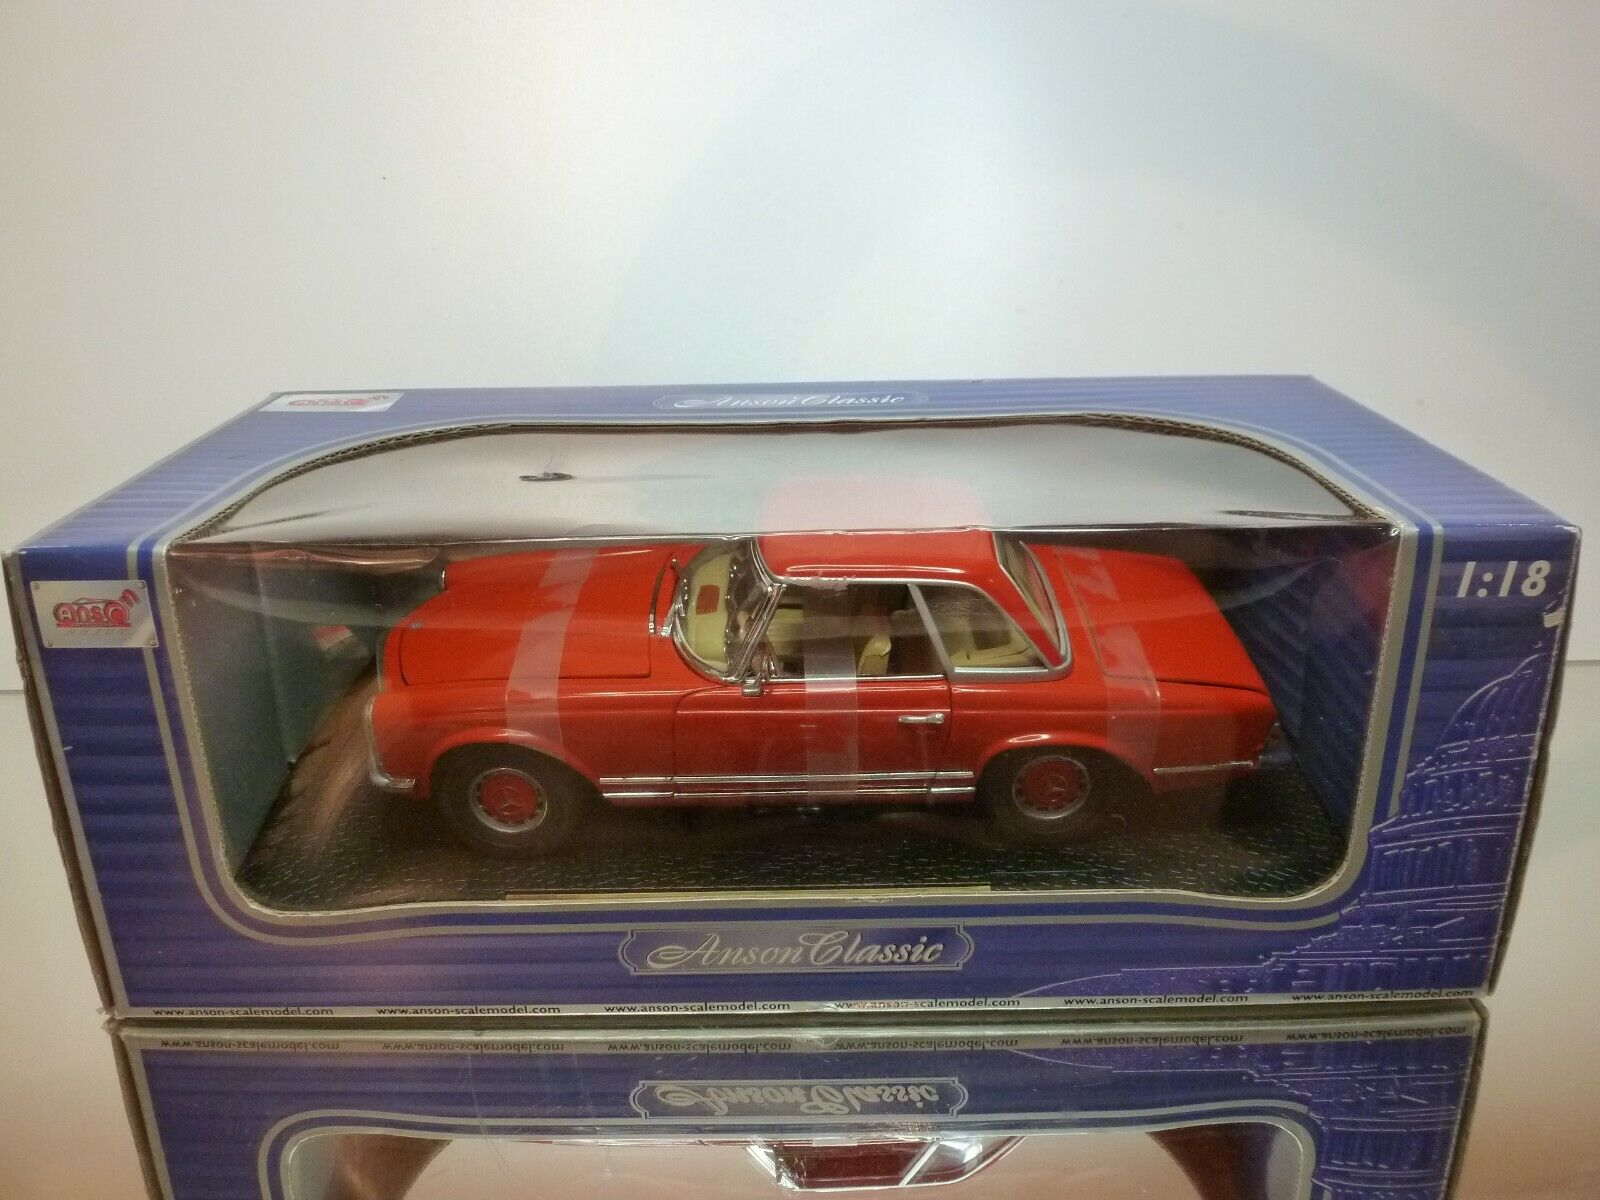 ANSON 30380 MERCEDES BENZ 280 SL - rouge 1 18 - EXCELLENT CONDITION IN BOX